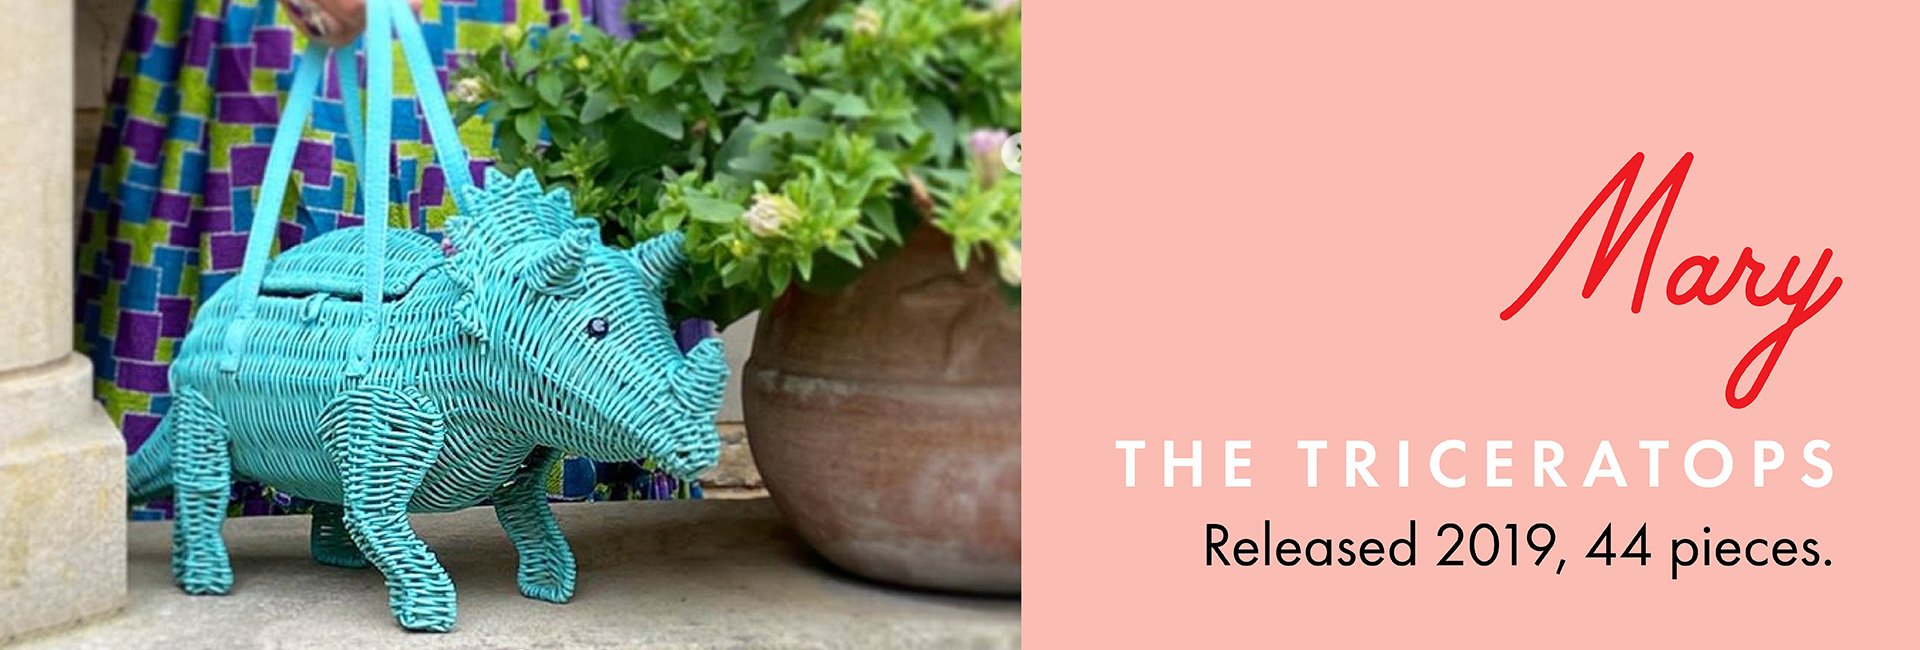 Mary the Triceratops   Wicker Darling